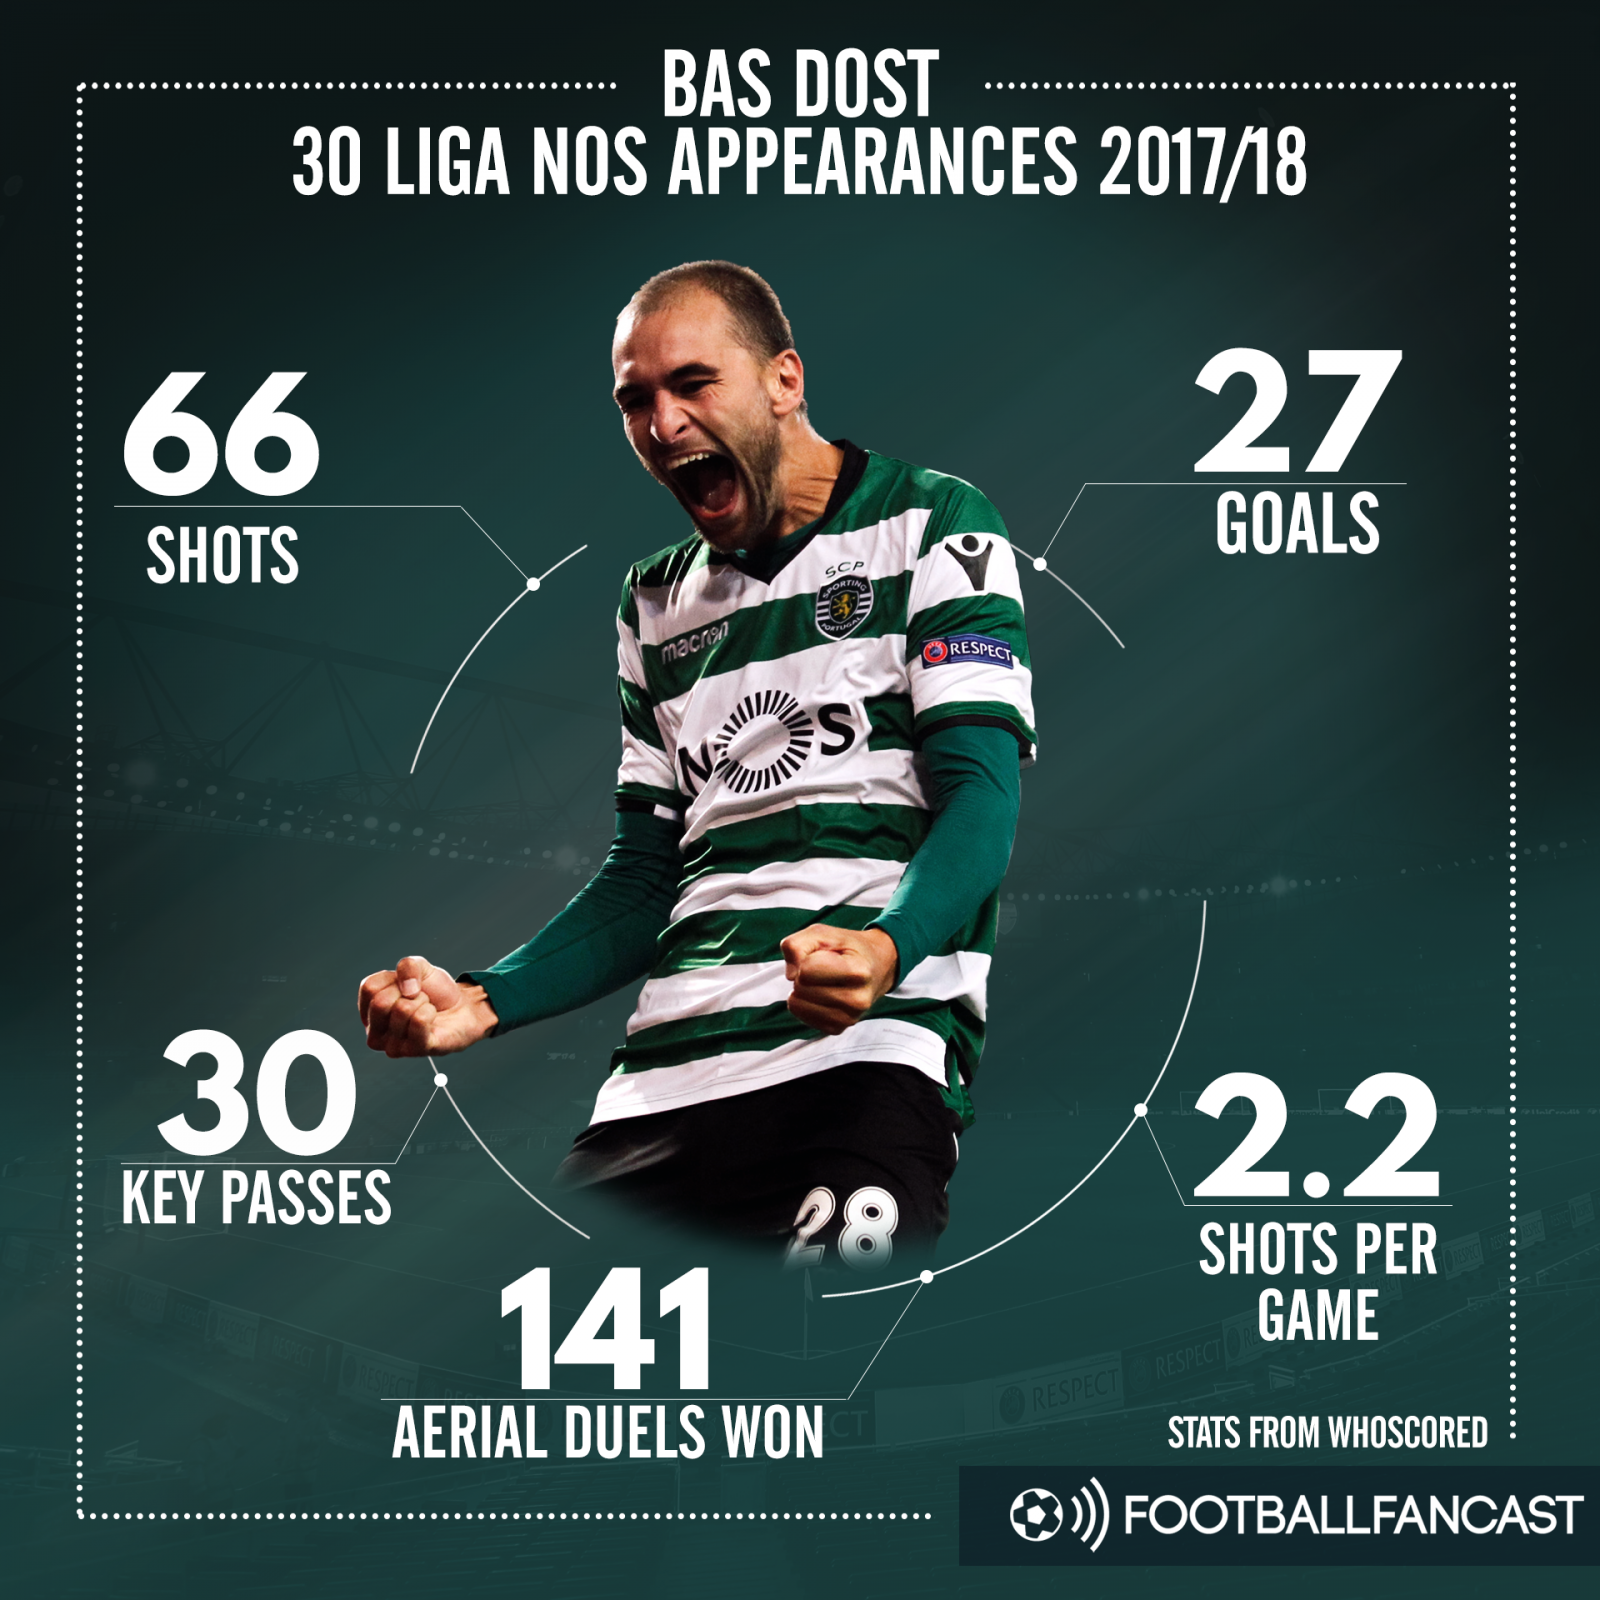 Bas Dost's stats for Sporting Lisbon this season